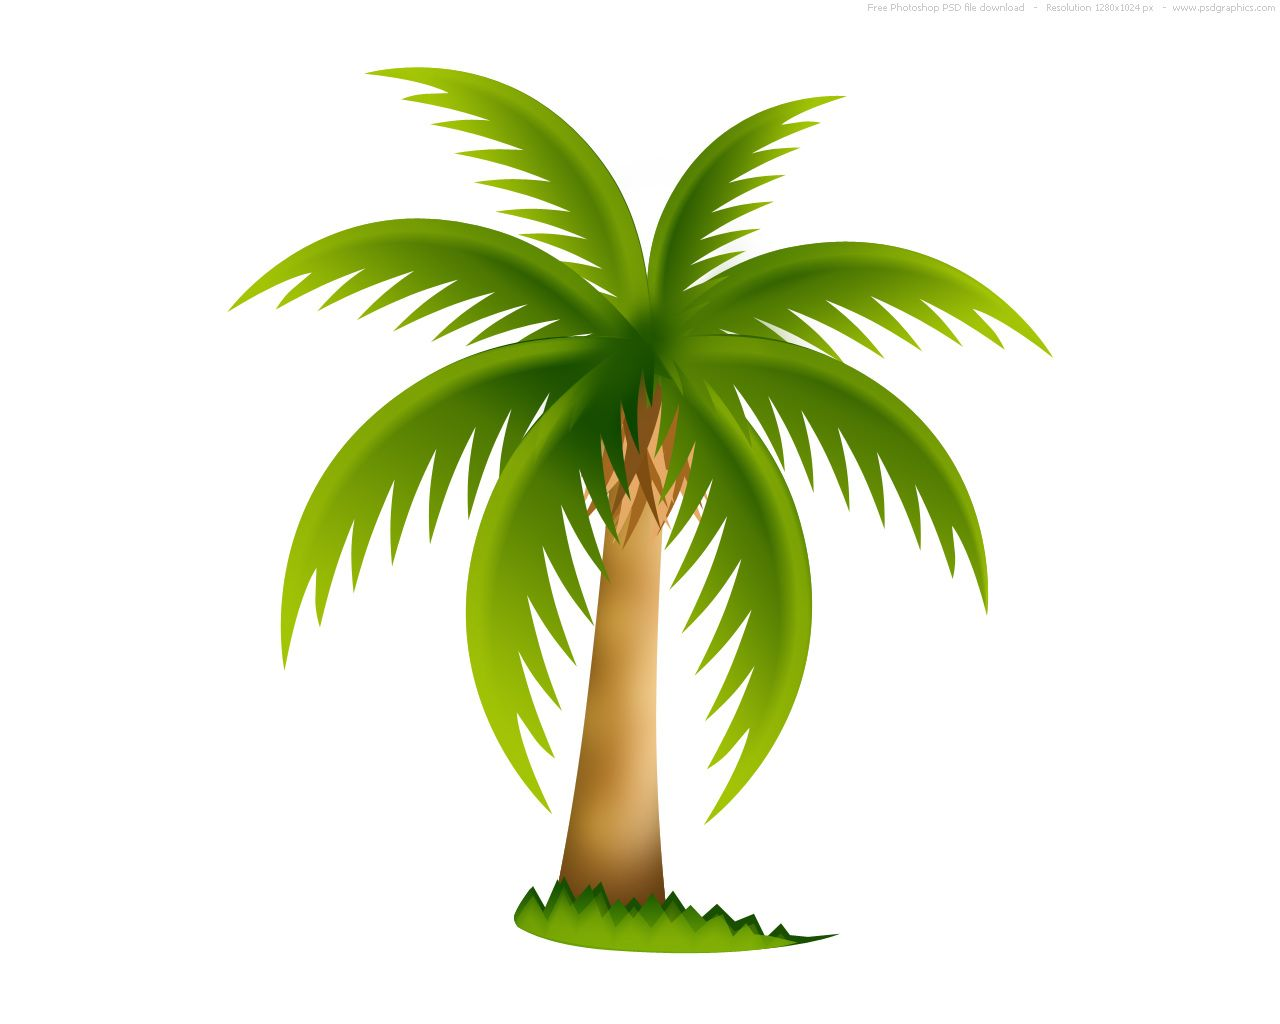 Tree Clipart | Palm Tree image - vector clip art online, royalty ...